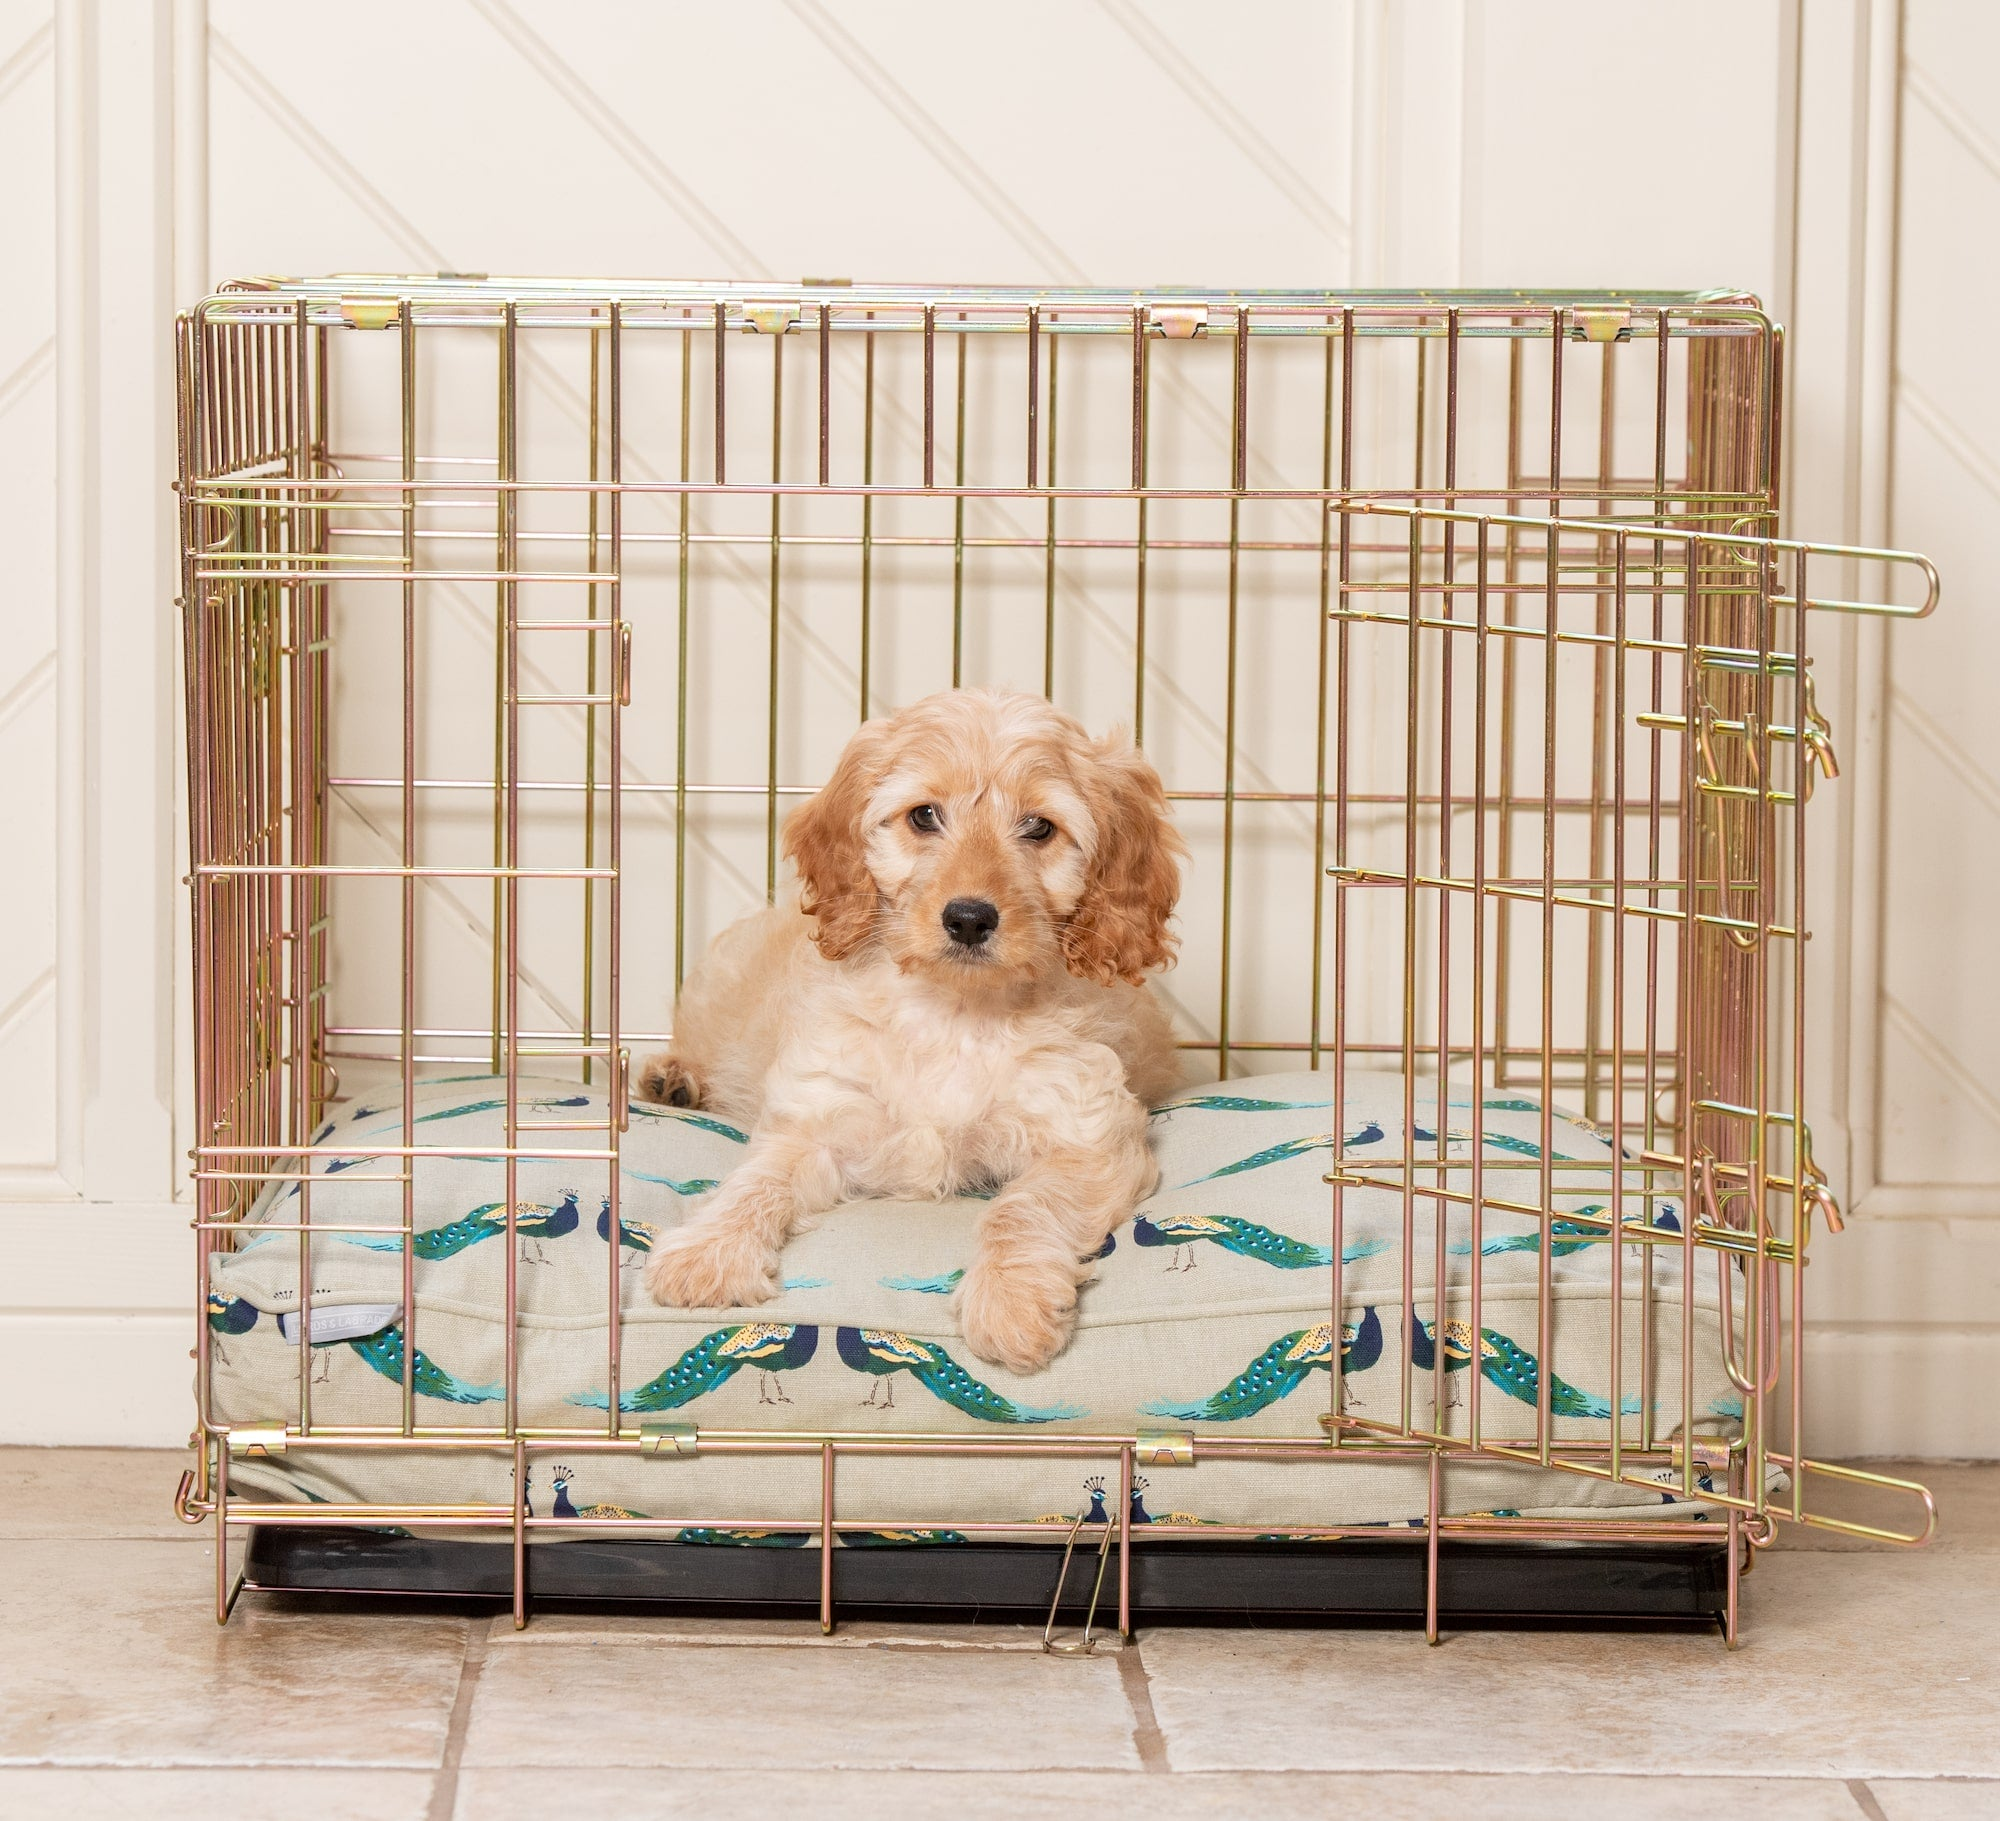 Cockapoo sitting in a dog crate with a dog cushion made by Lords & Labradors in Sophie Allport Peacock fabric